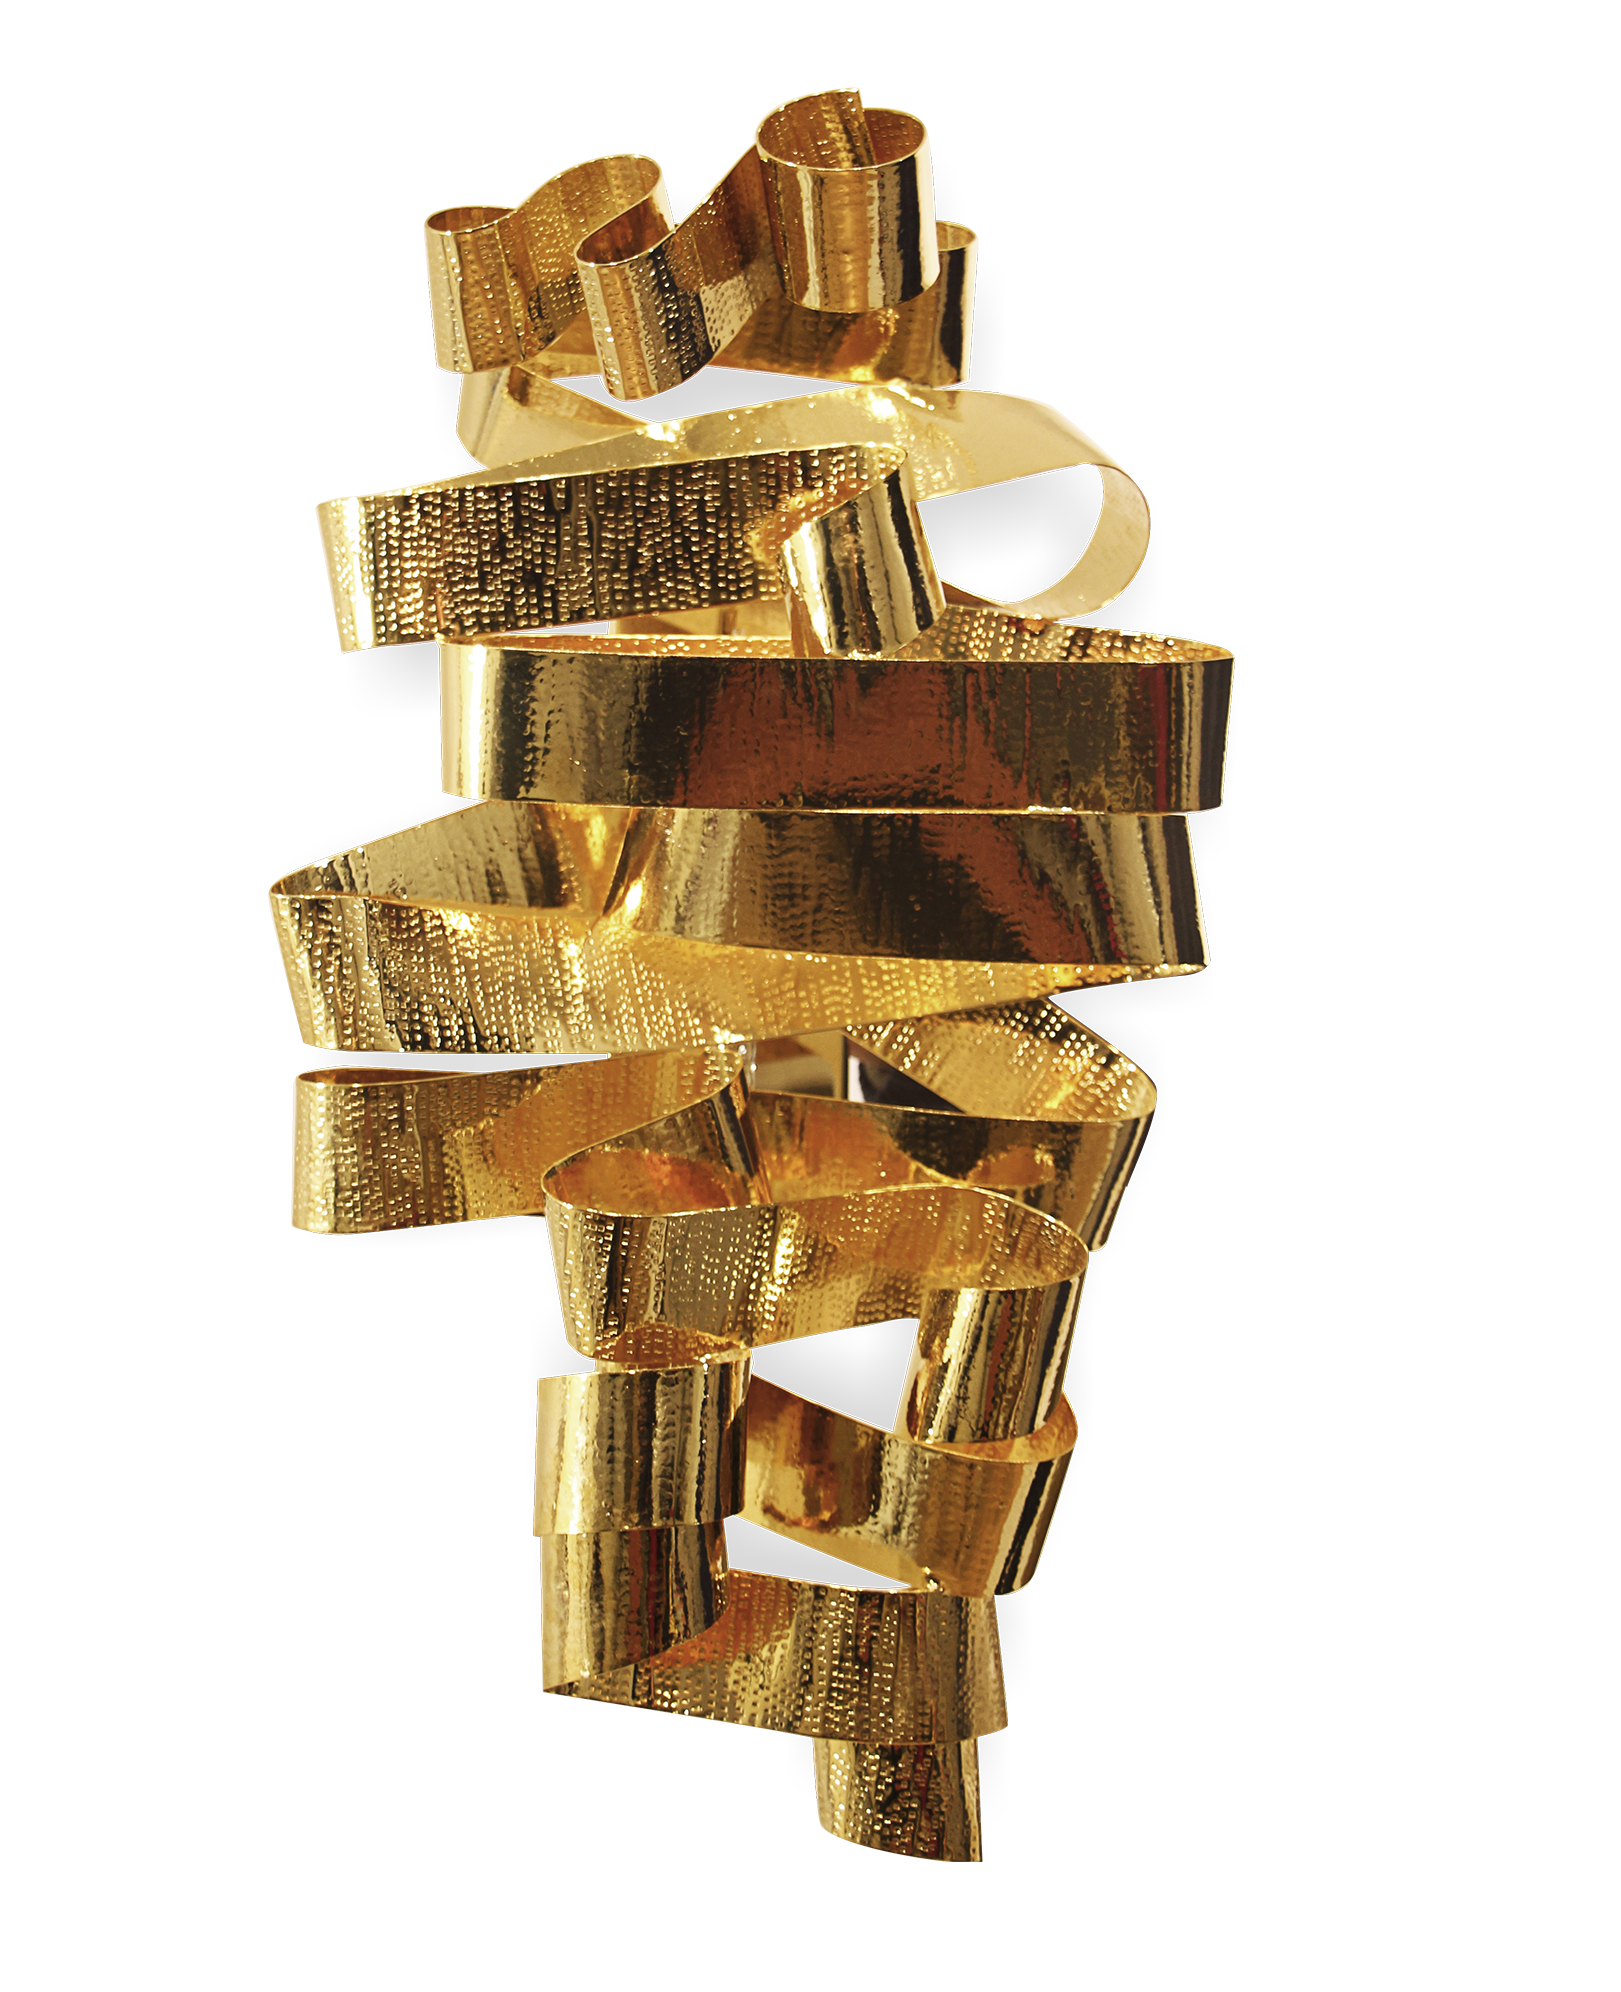 chloe-sconce-1 koket best lighting ideas The best lighting ideas for your living room decoration chloe sconce 1 koket